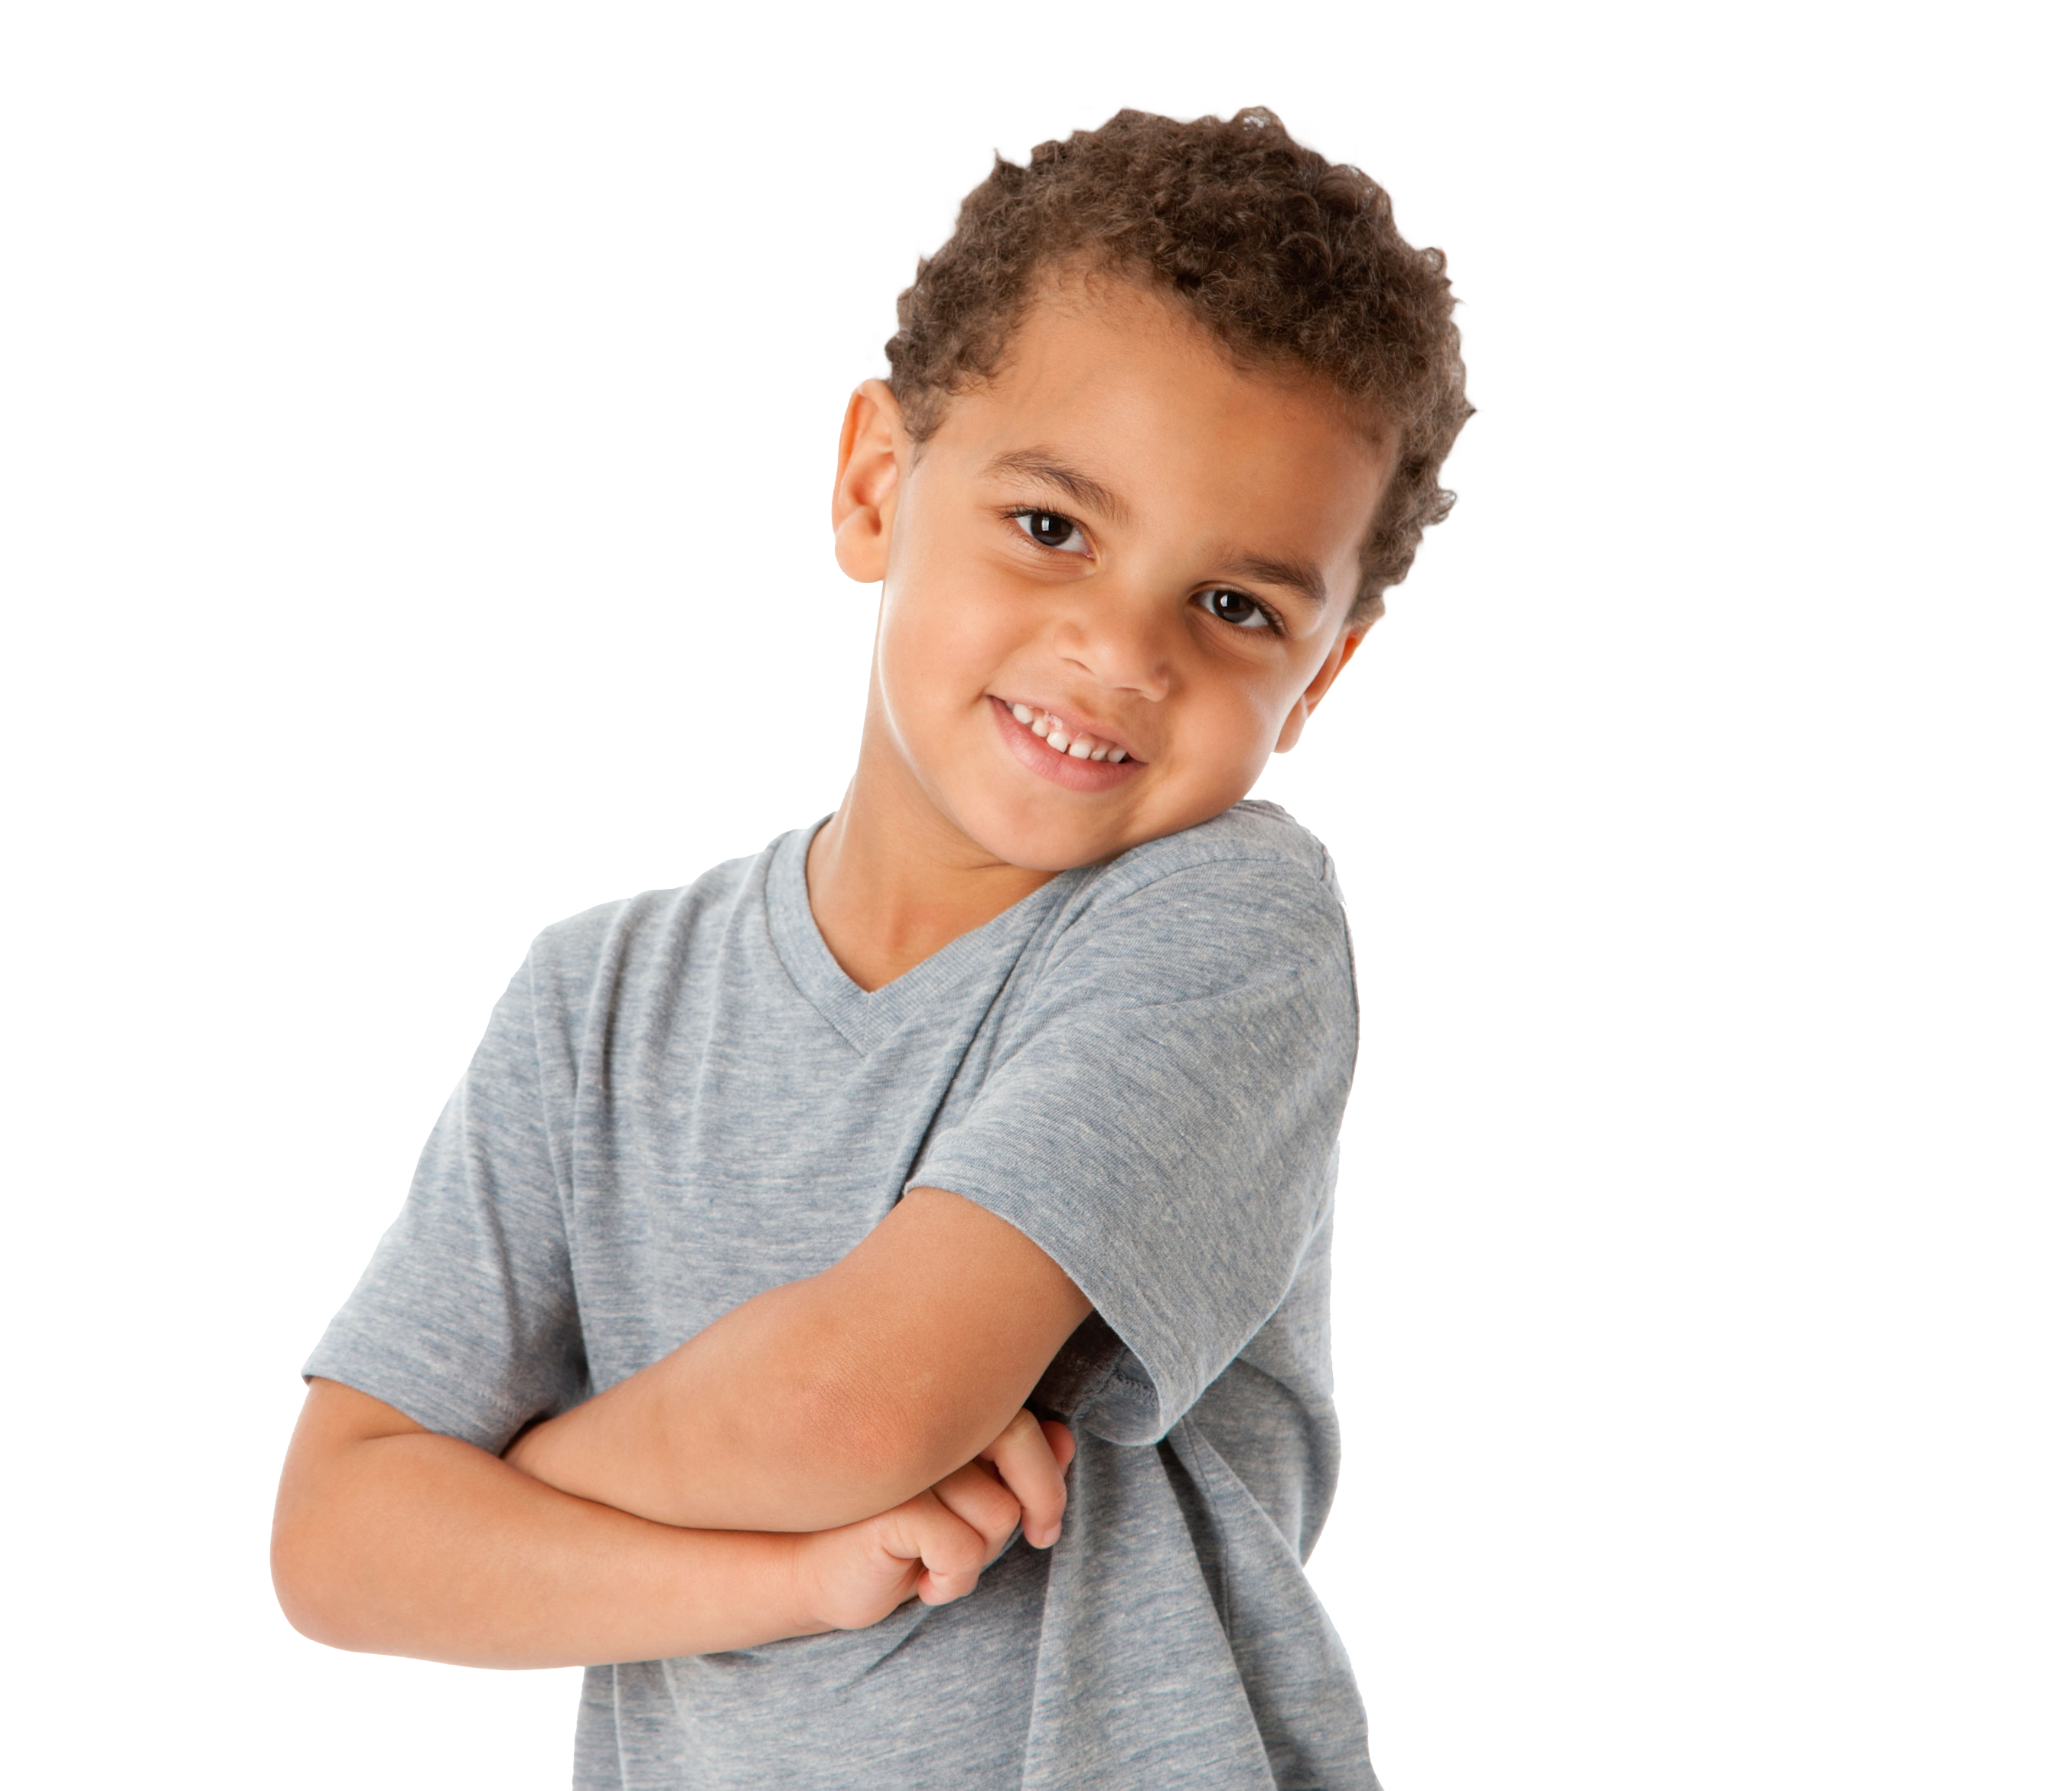 picture of a boy png hd transparent picture of a boy hd png images